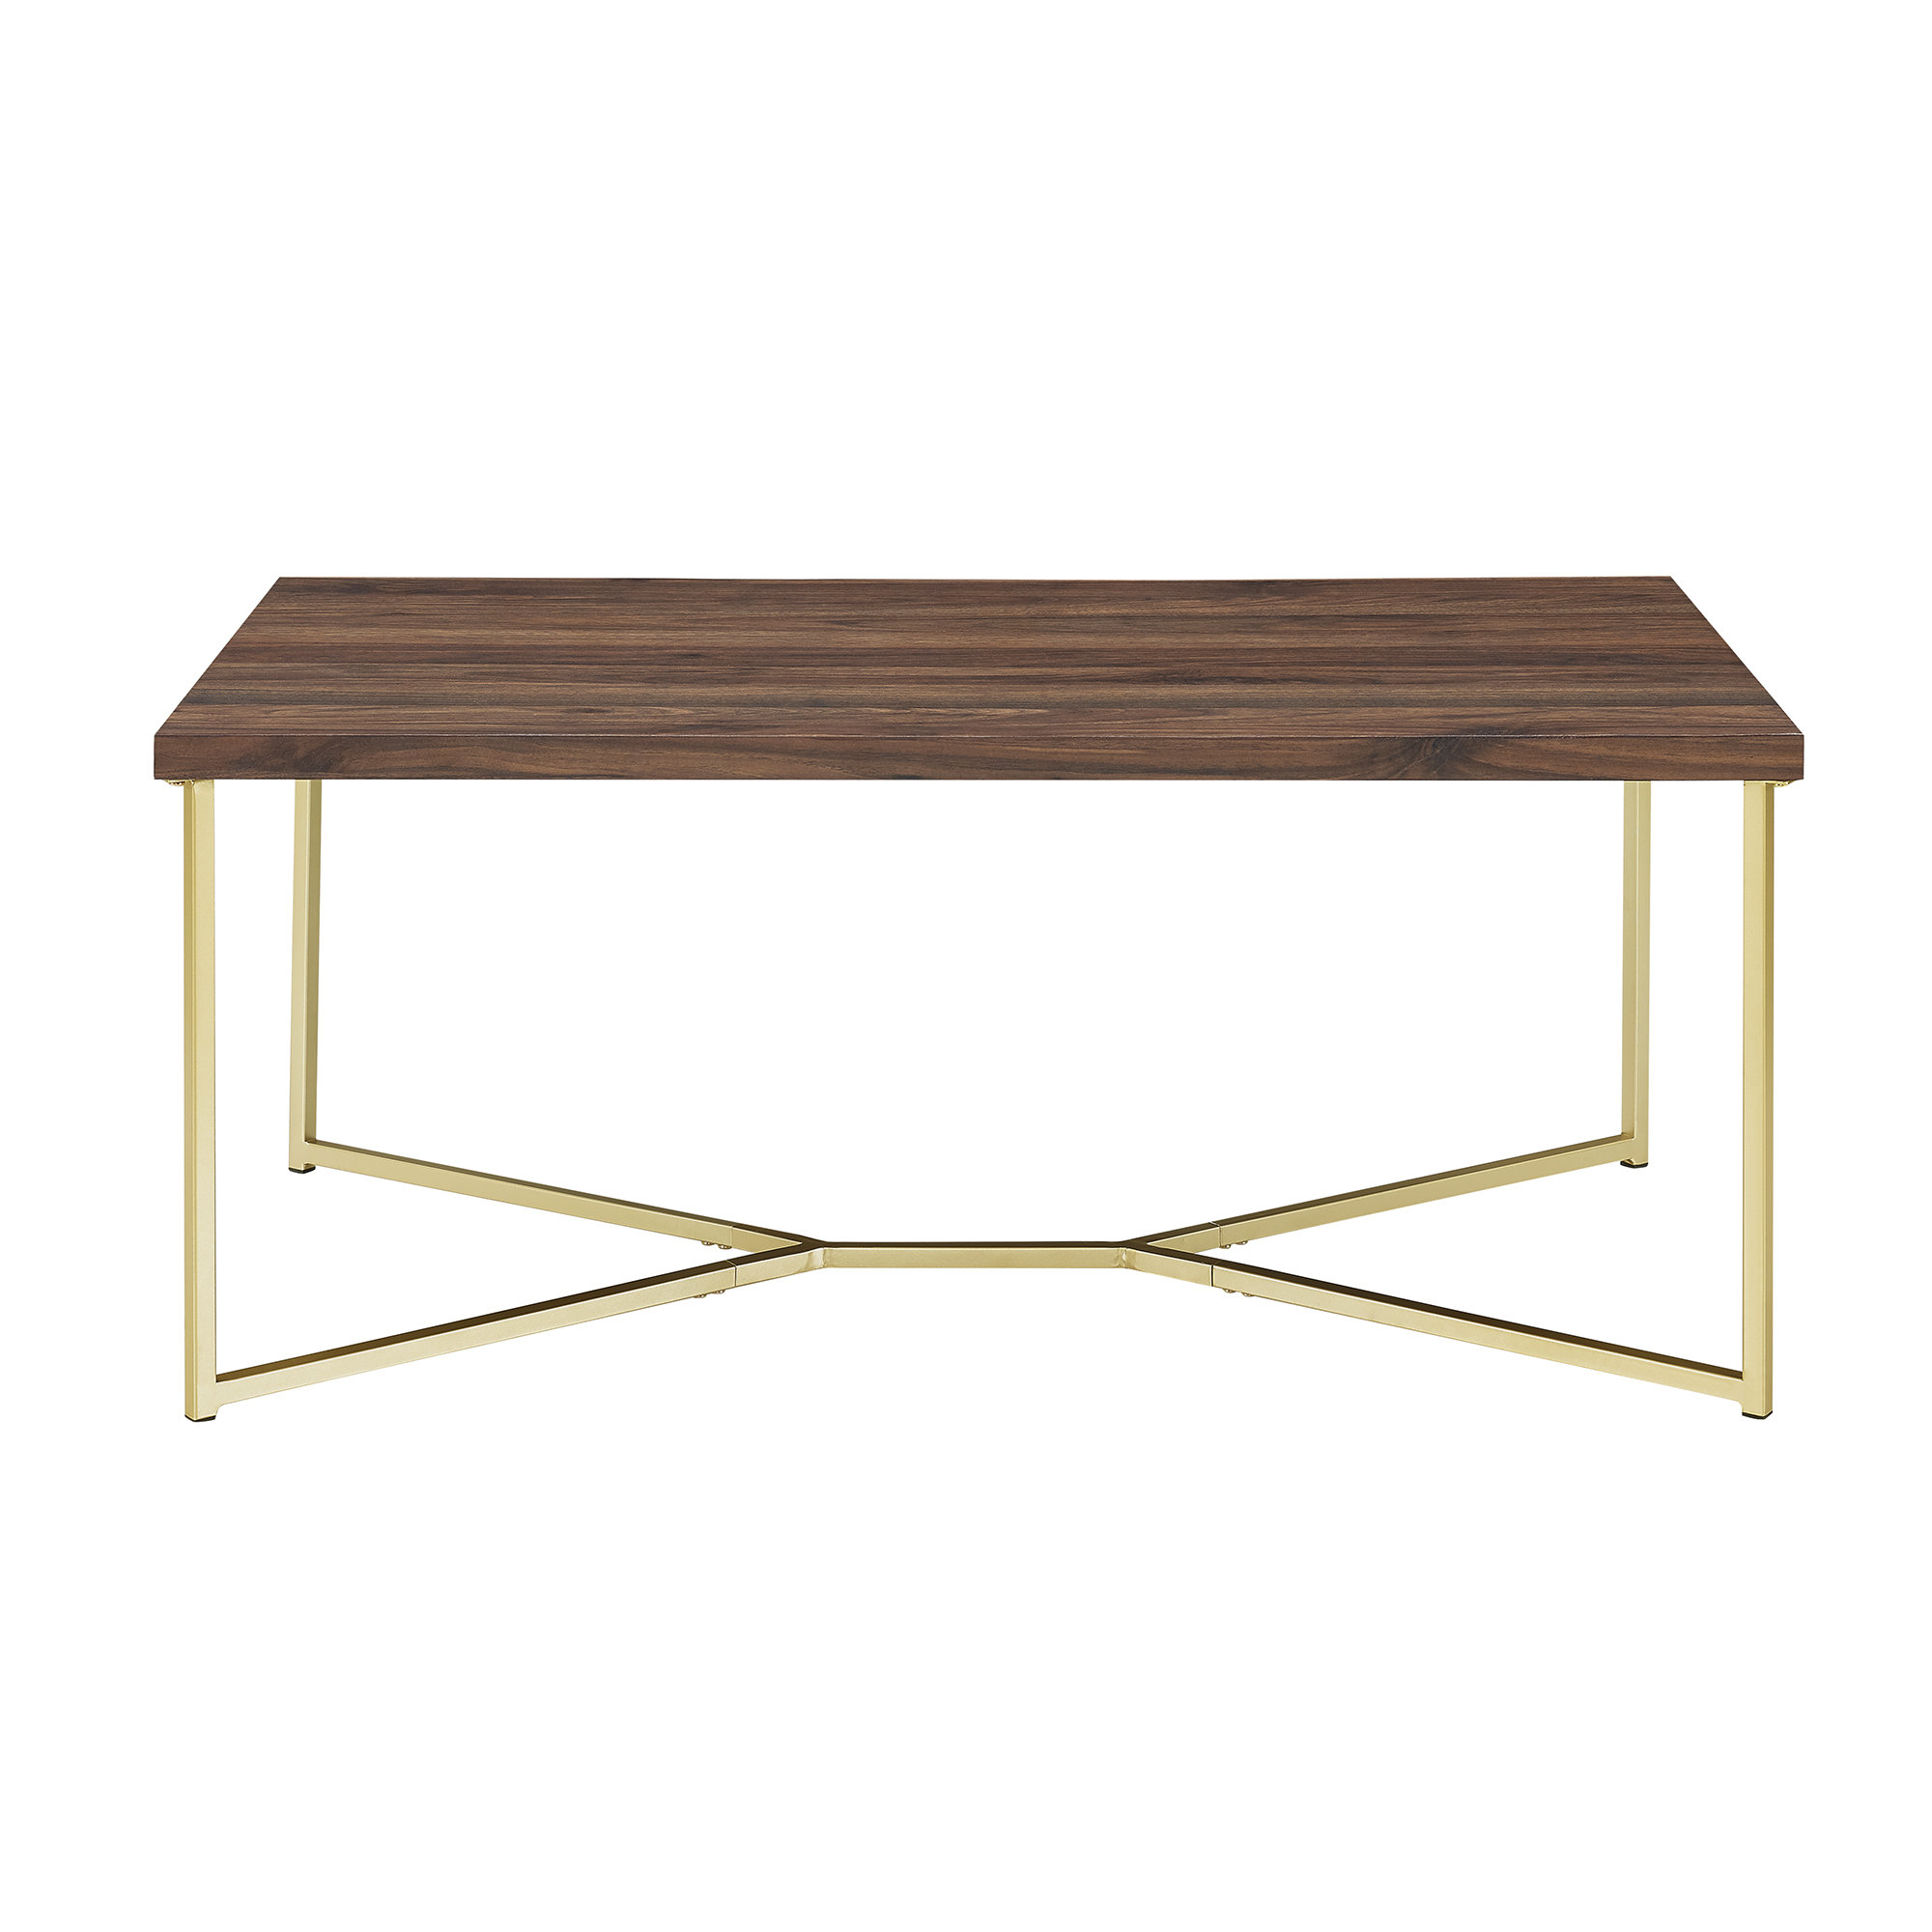 orren ellis default name chrome metal glass accent console sofa table with shelf save crystal drawer knobs resin coffee outdoor beverage cooler grey nest tables make your own barn